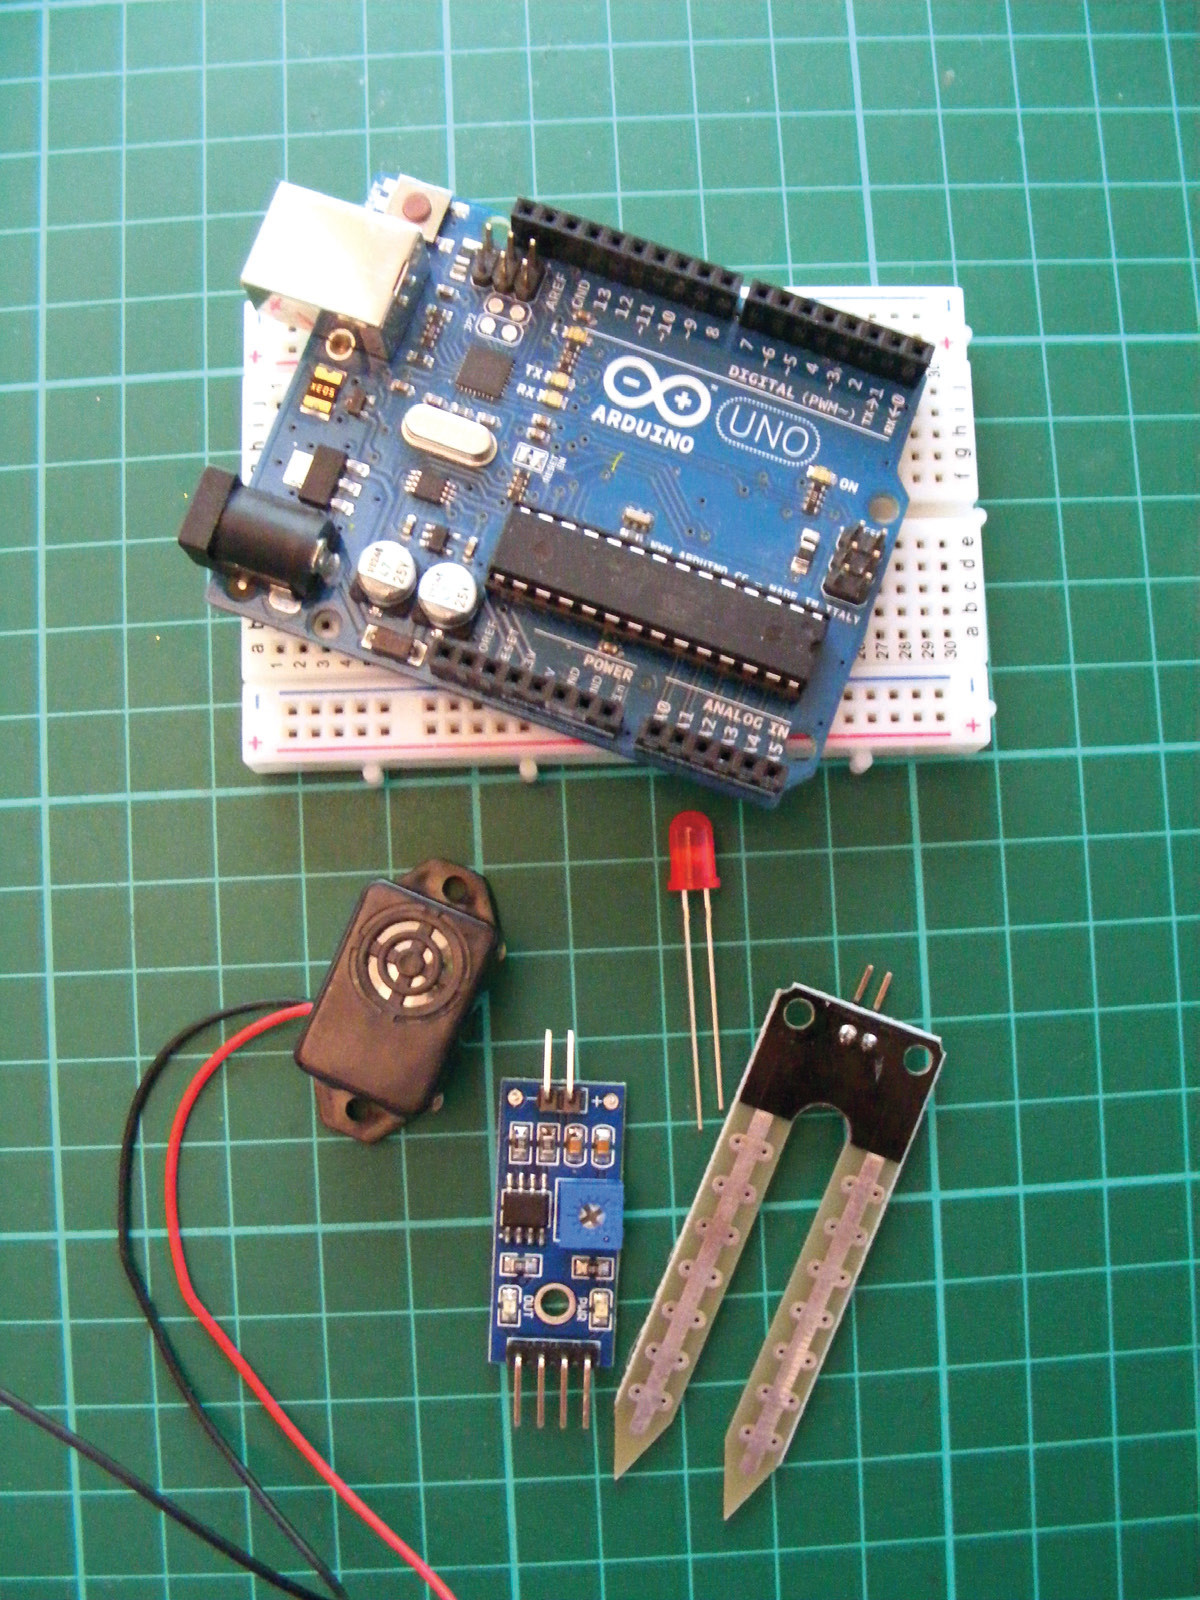 How To Build A Plant Monitor With Arduino Talking Heart Rate Circuit 0